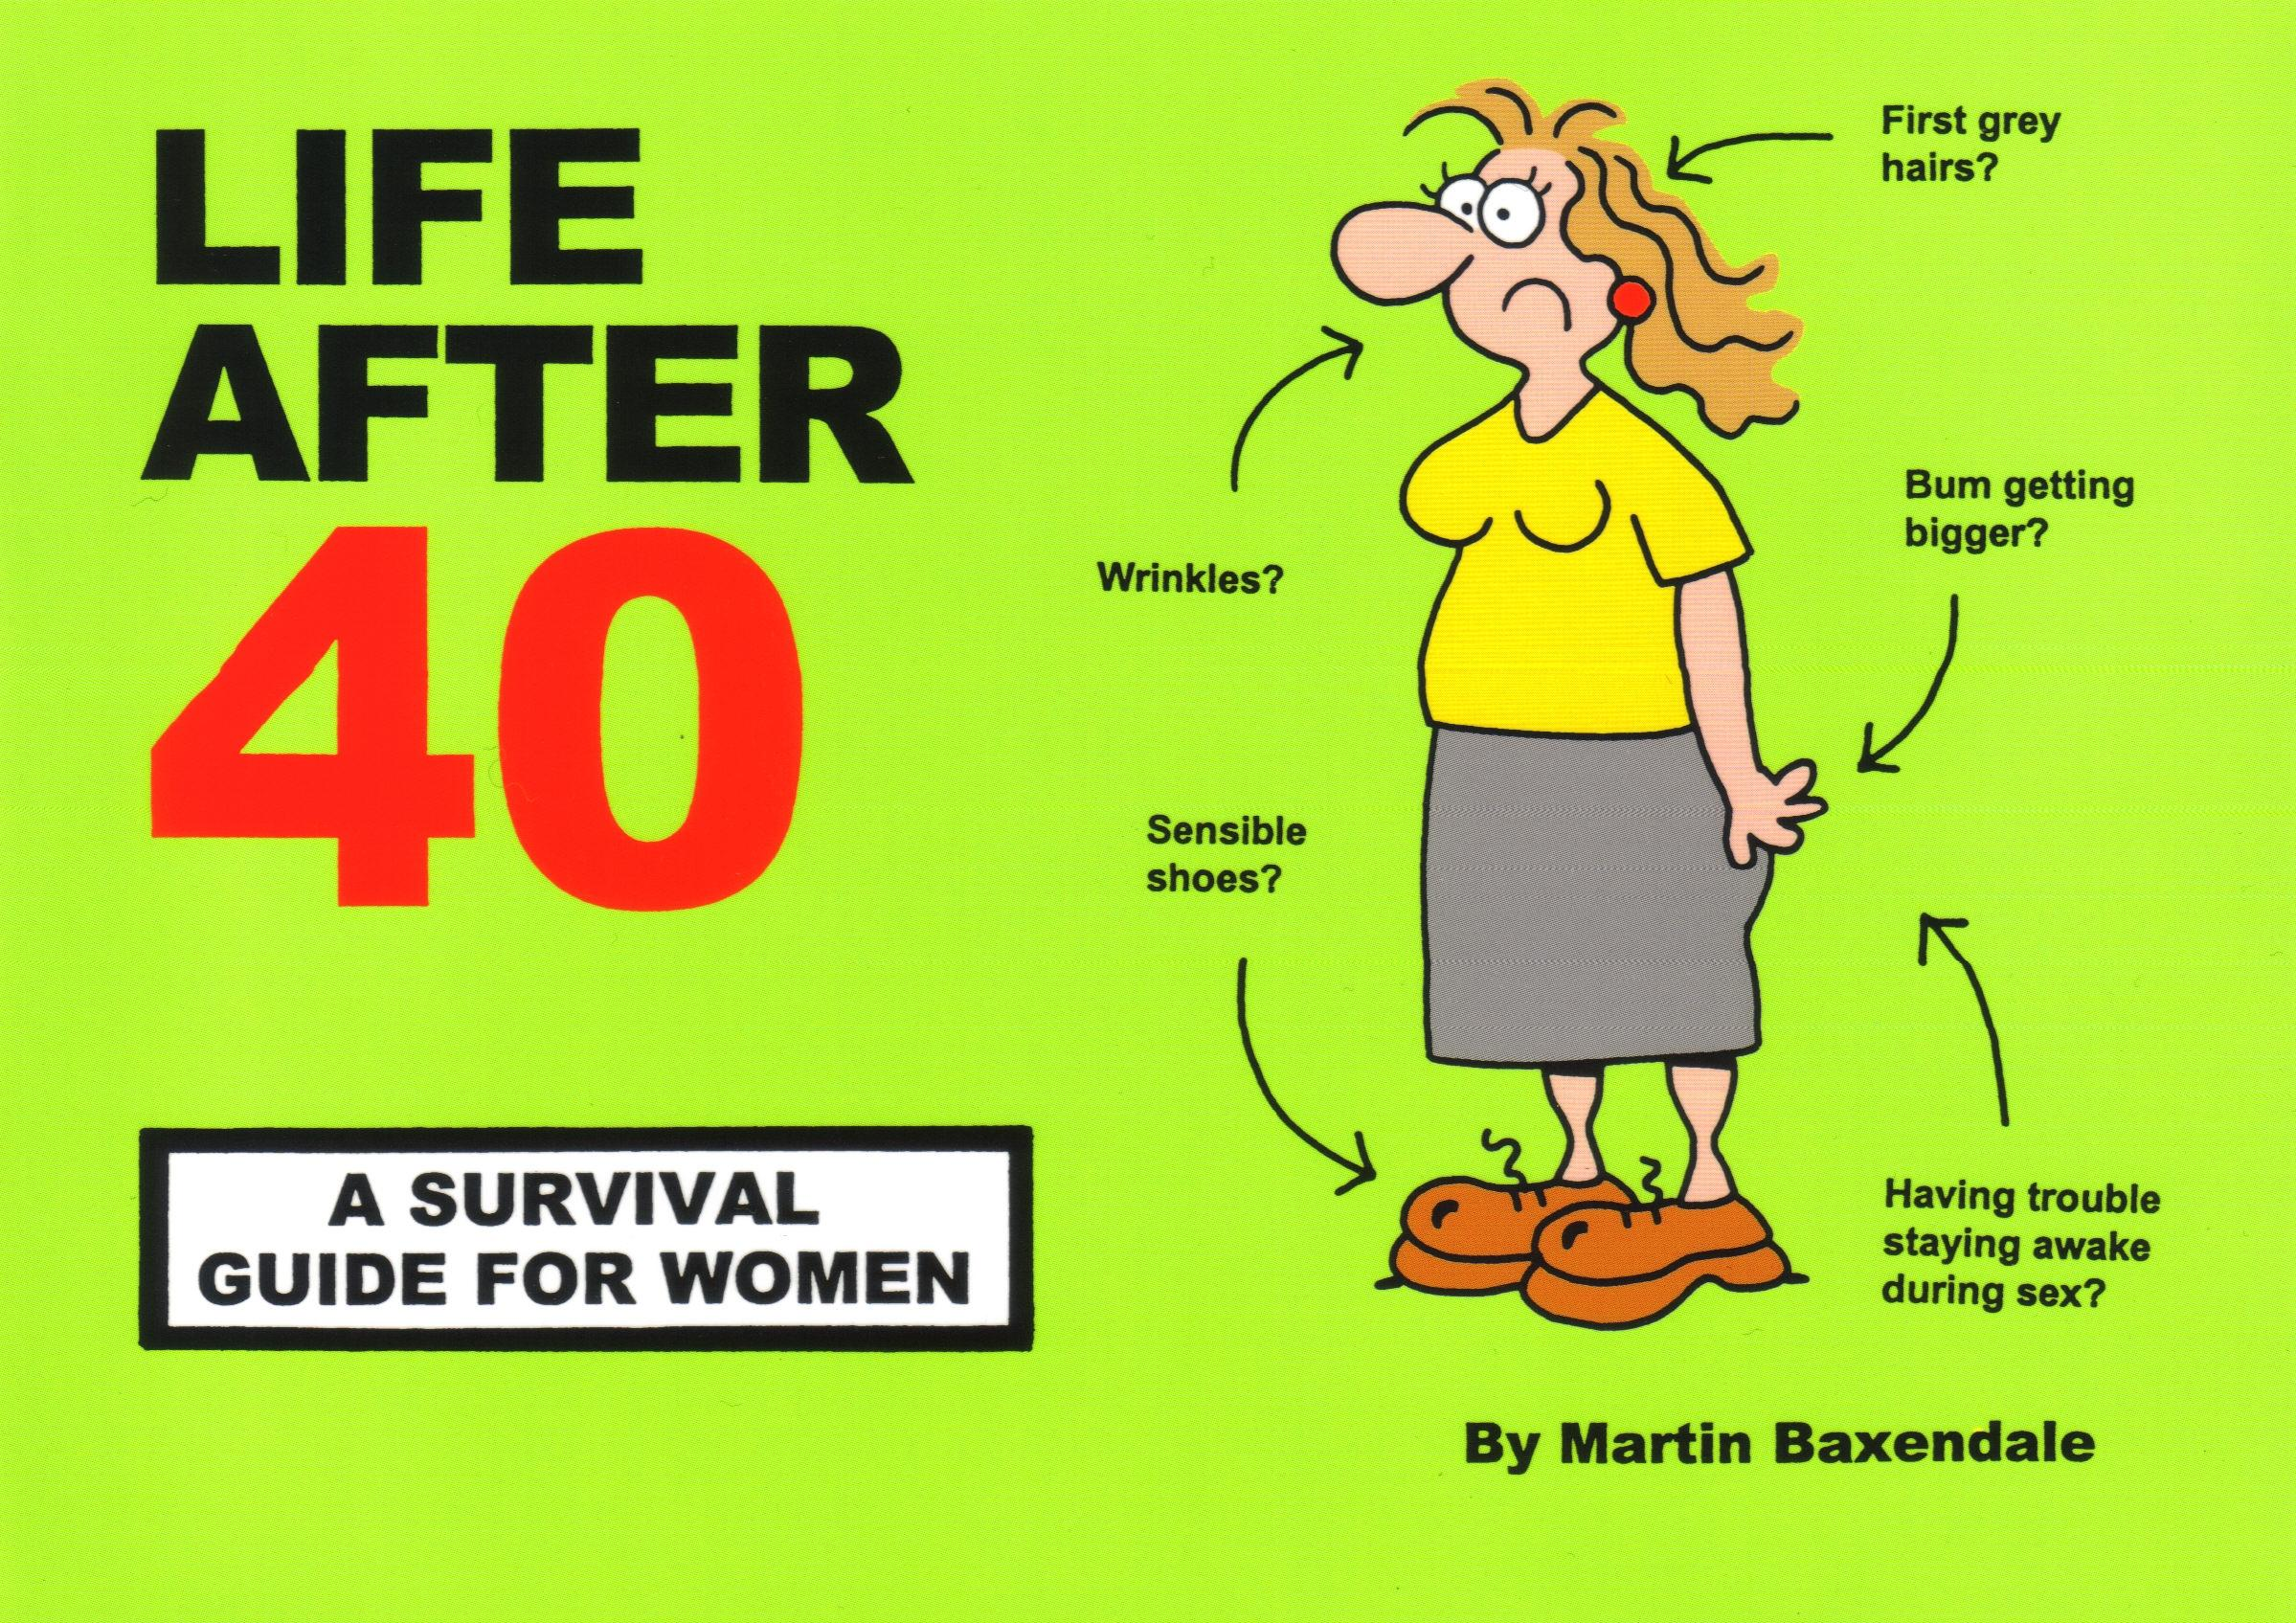 Books on dating after 50